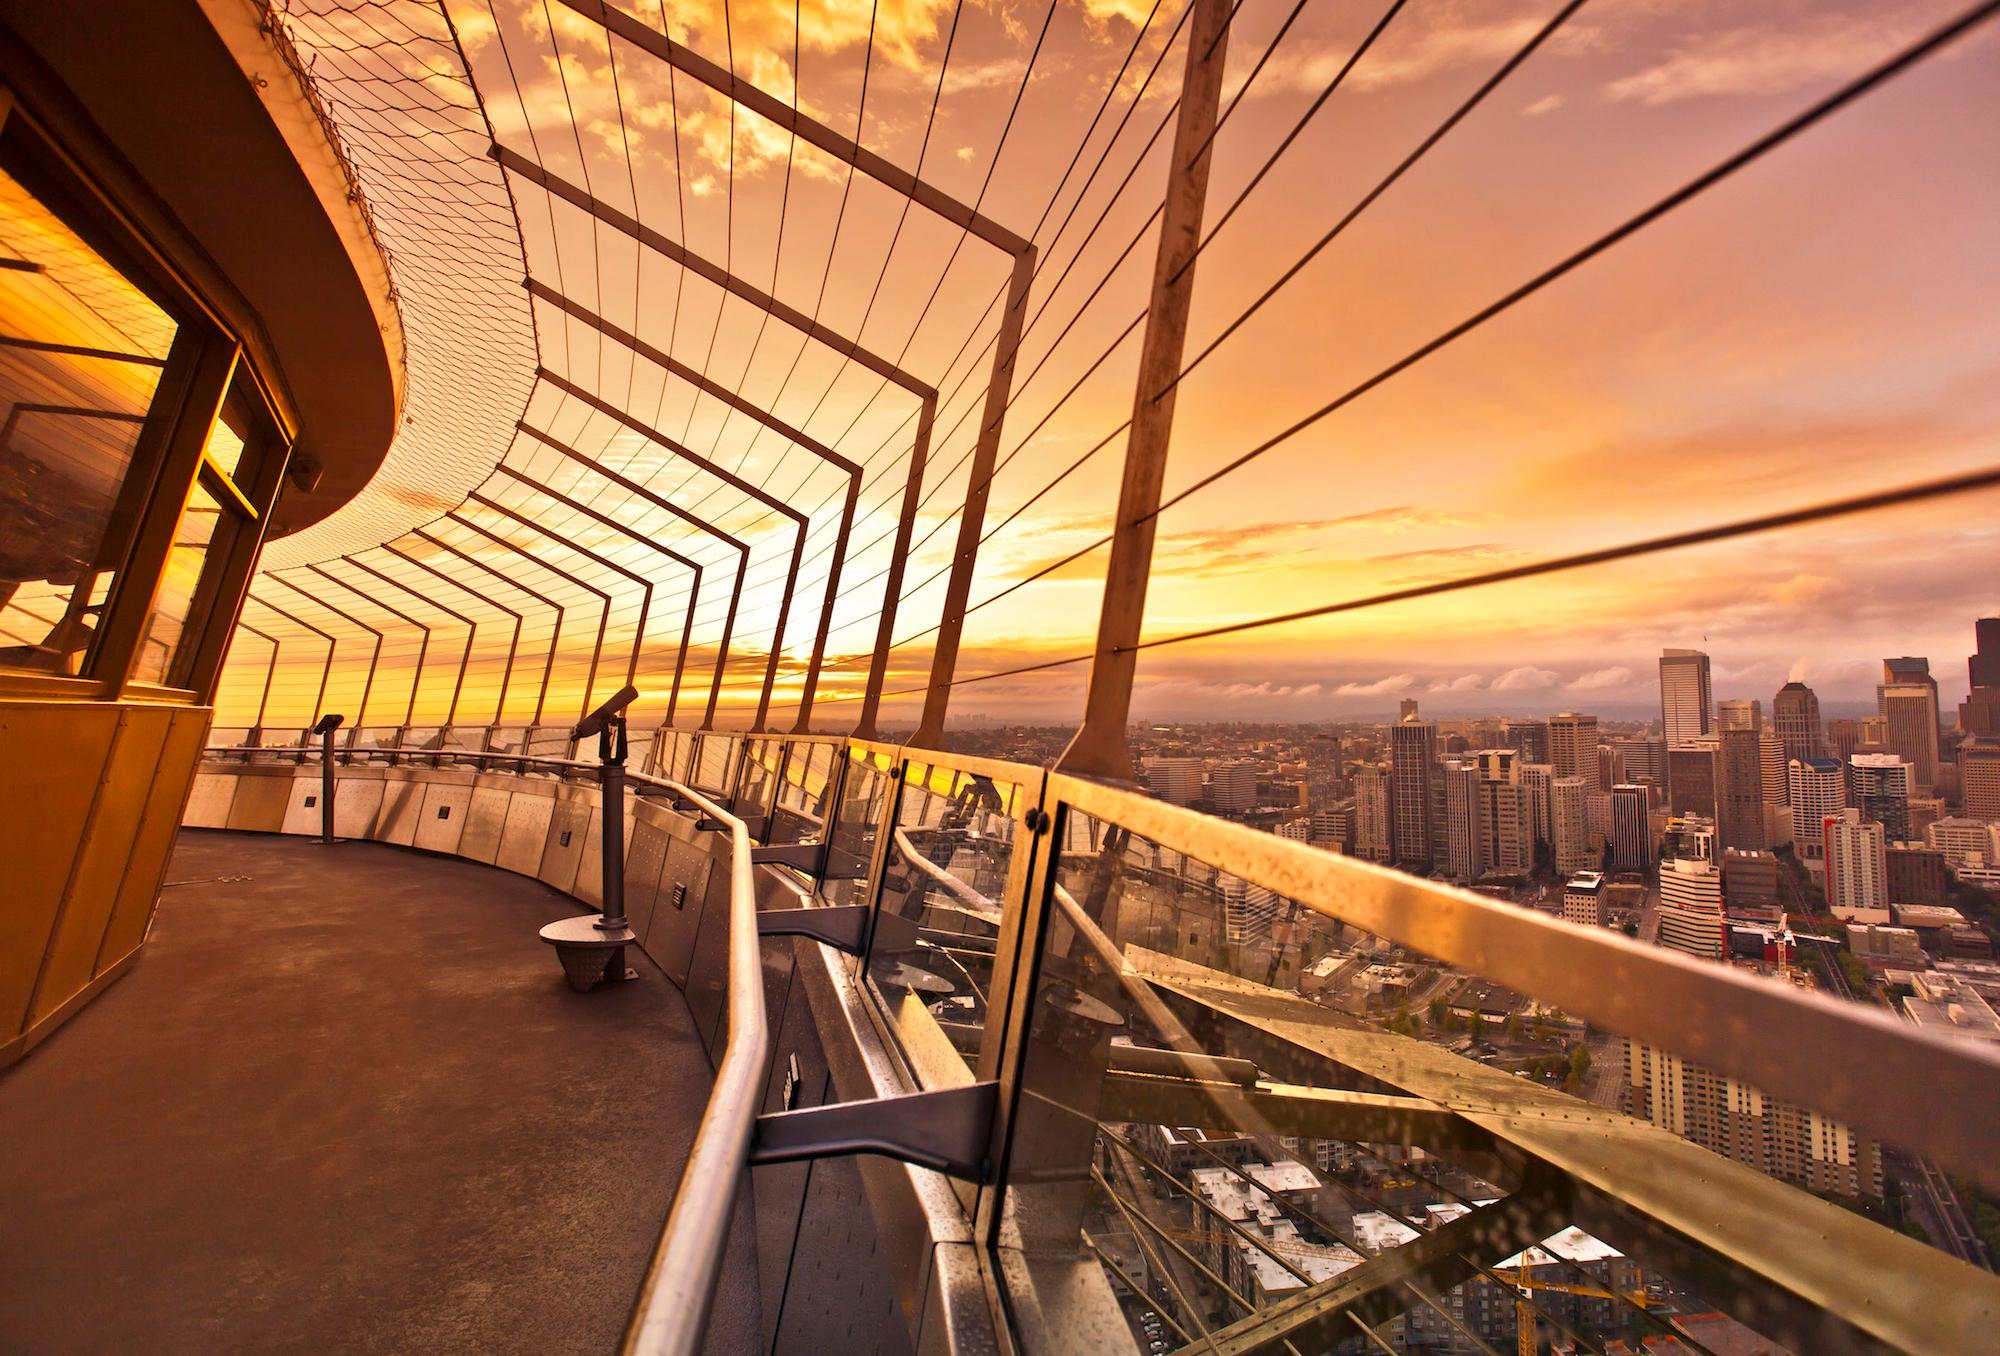 Seattle Needle observation deck at dusk. (Photo courtesy of Seattle Needle)